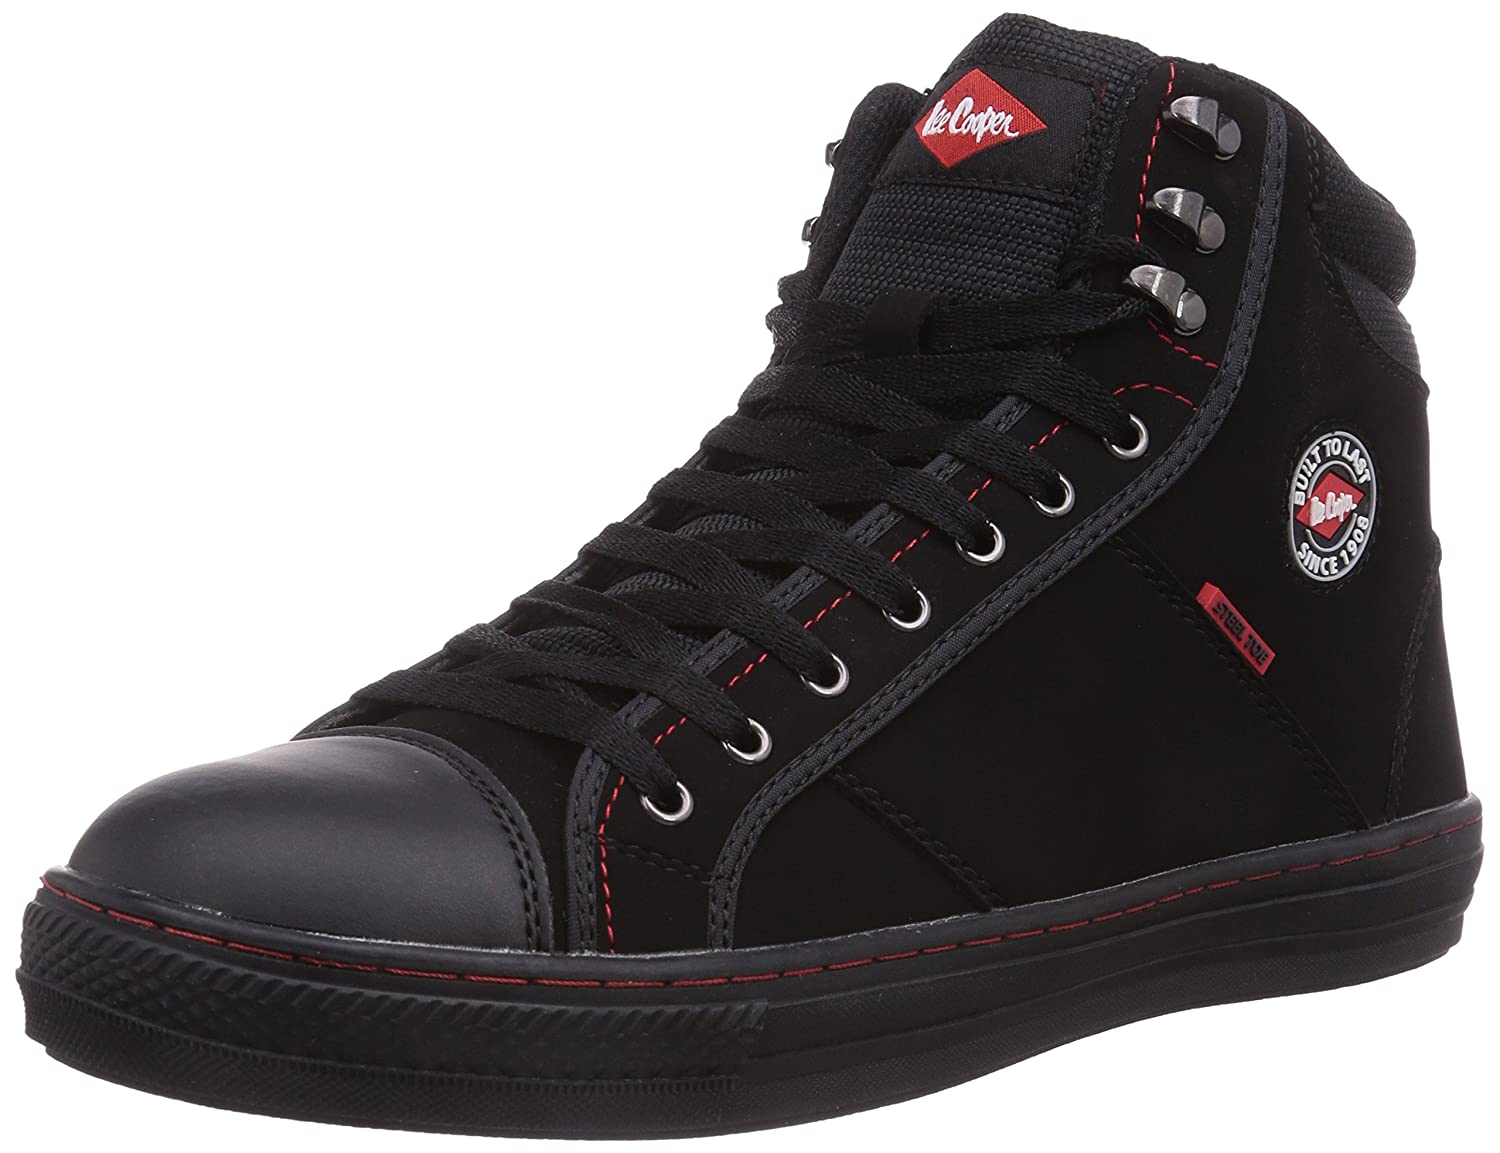 Lee Cooper Workwear Sb Boot, Chaussures de sécurité Adulte Mixte